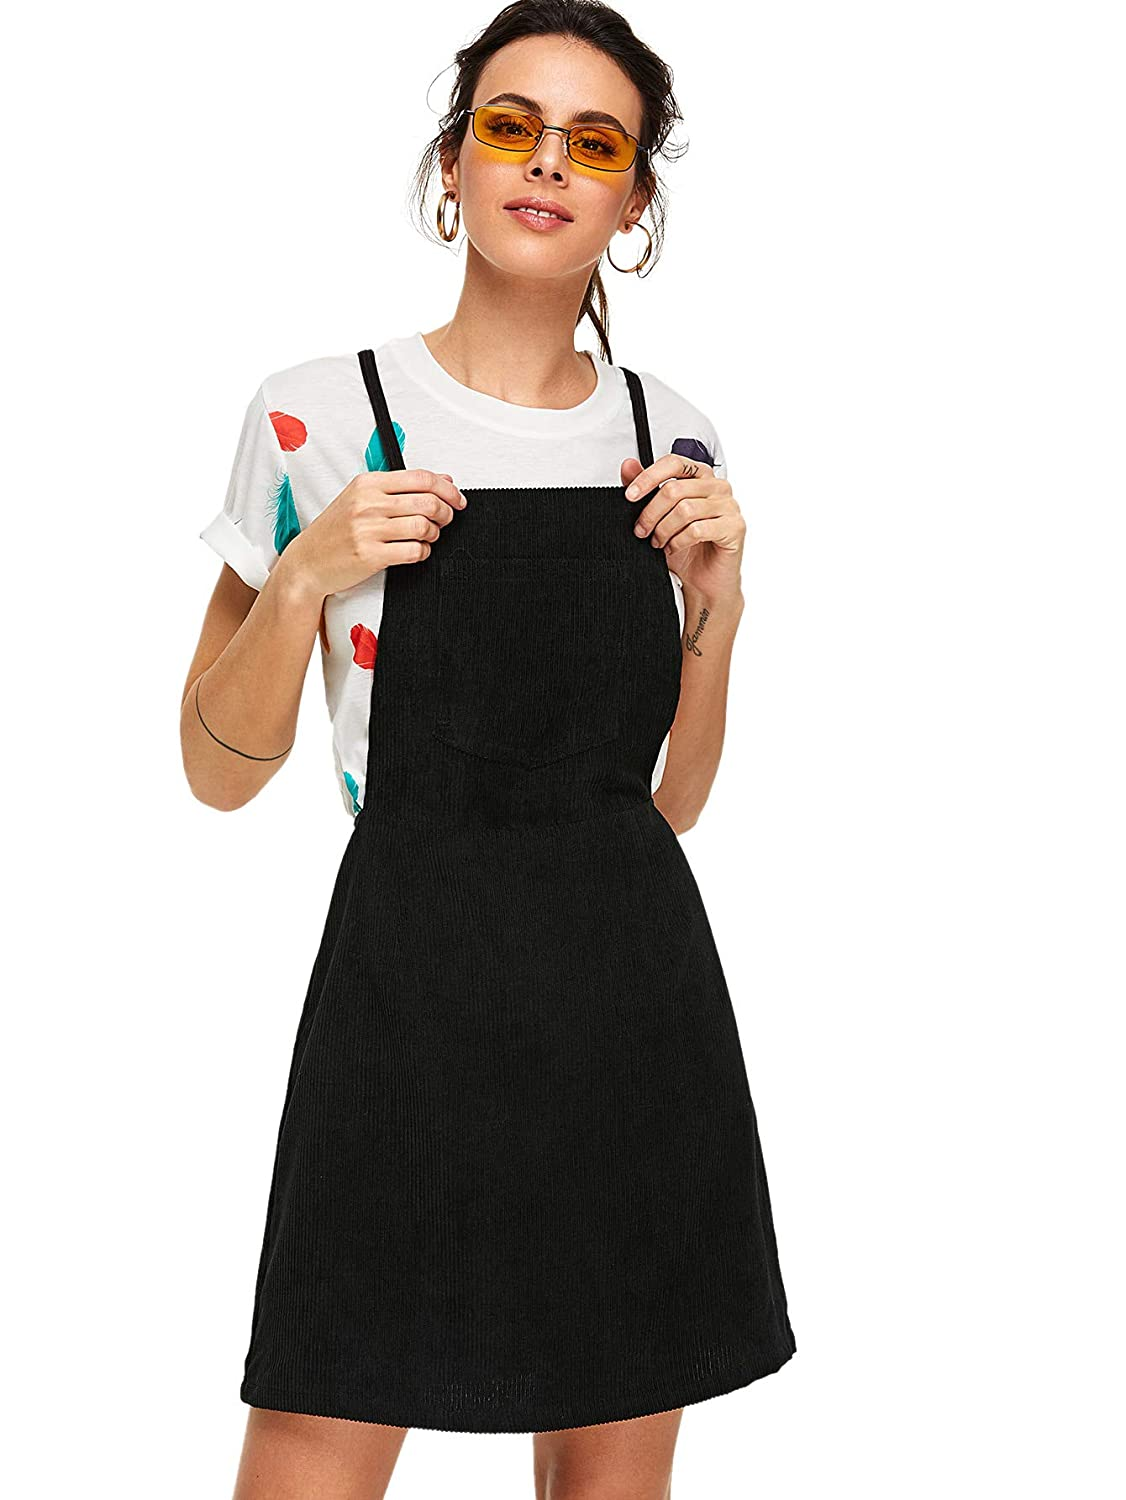 33d8ed2a9f7 MAKEMECHIC Women s Crisscross Back Pocket Corduroy Pinafore A Line Overall  Dress at Amazon Women s Clothing store